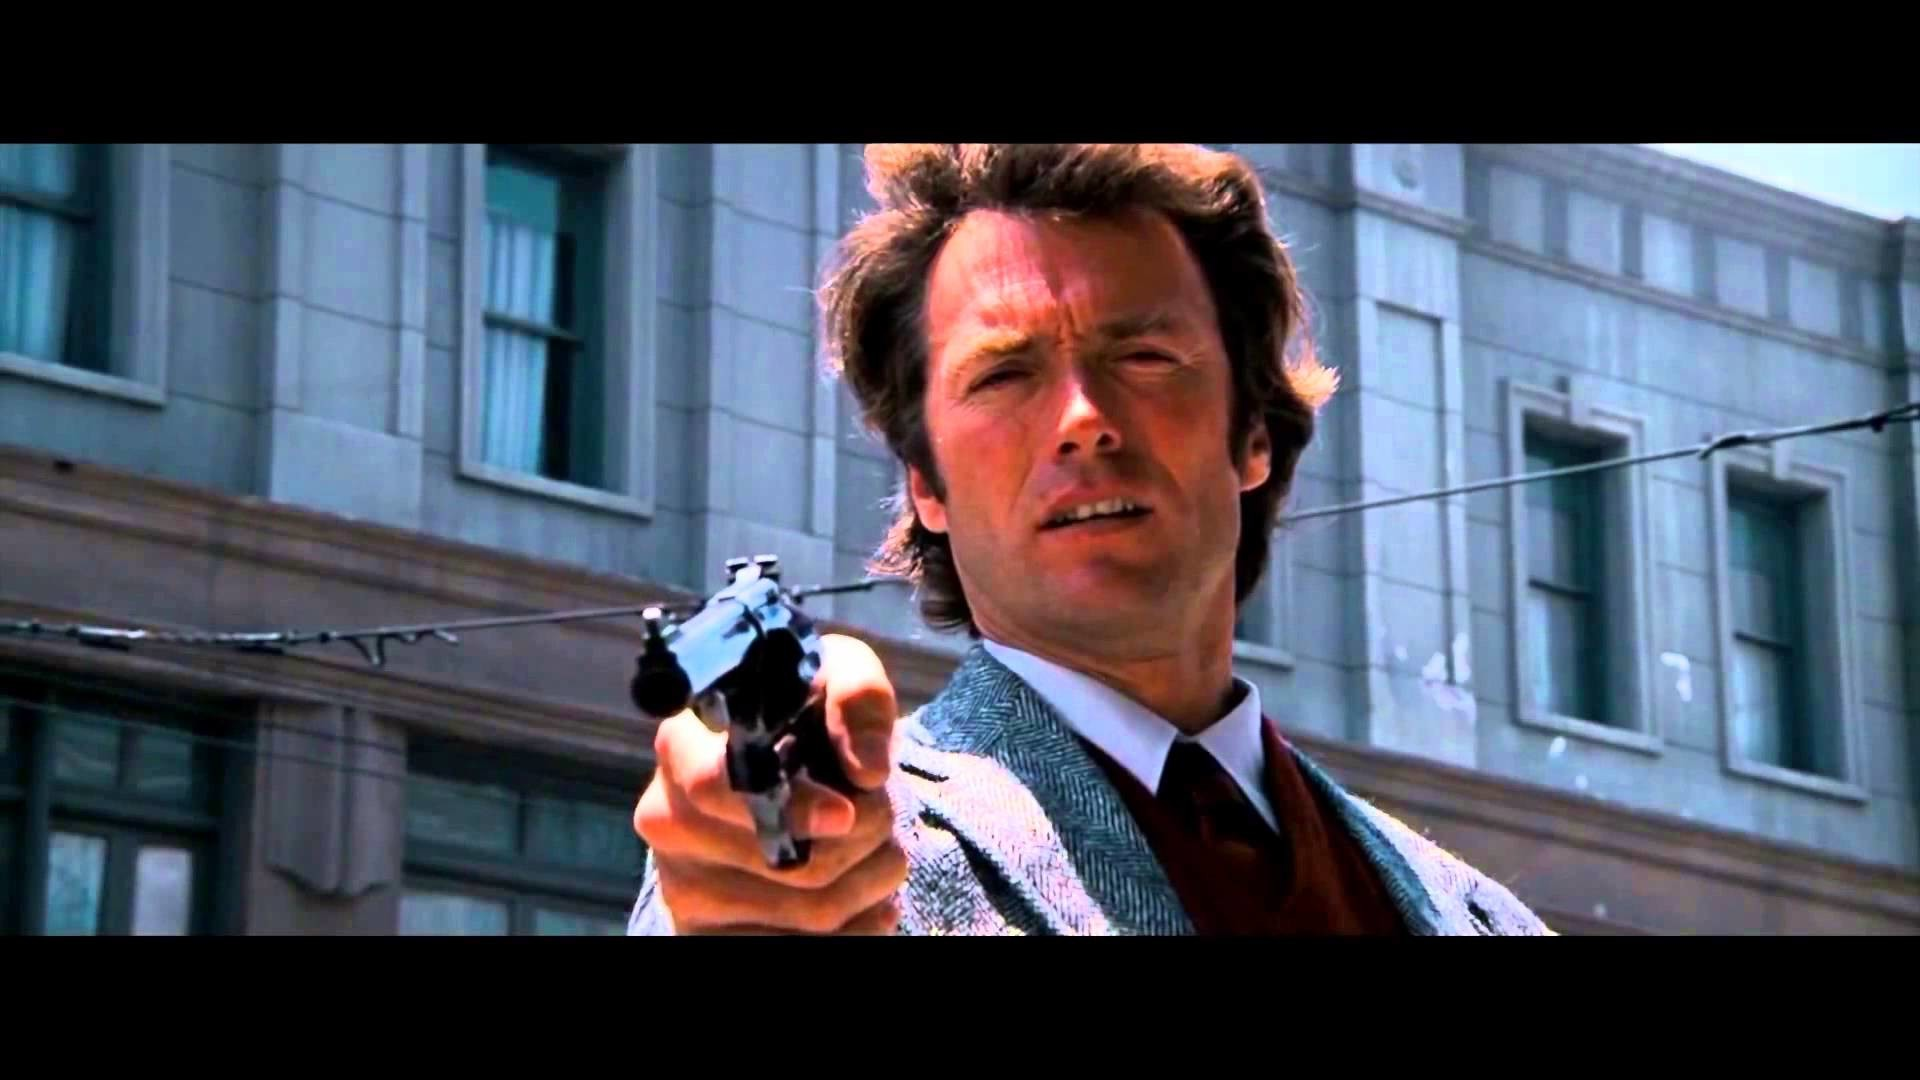 1920x1080 Dirty Harry. Clint Eastwood as